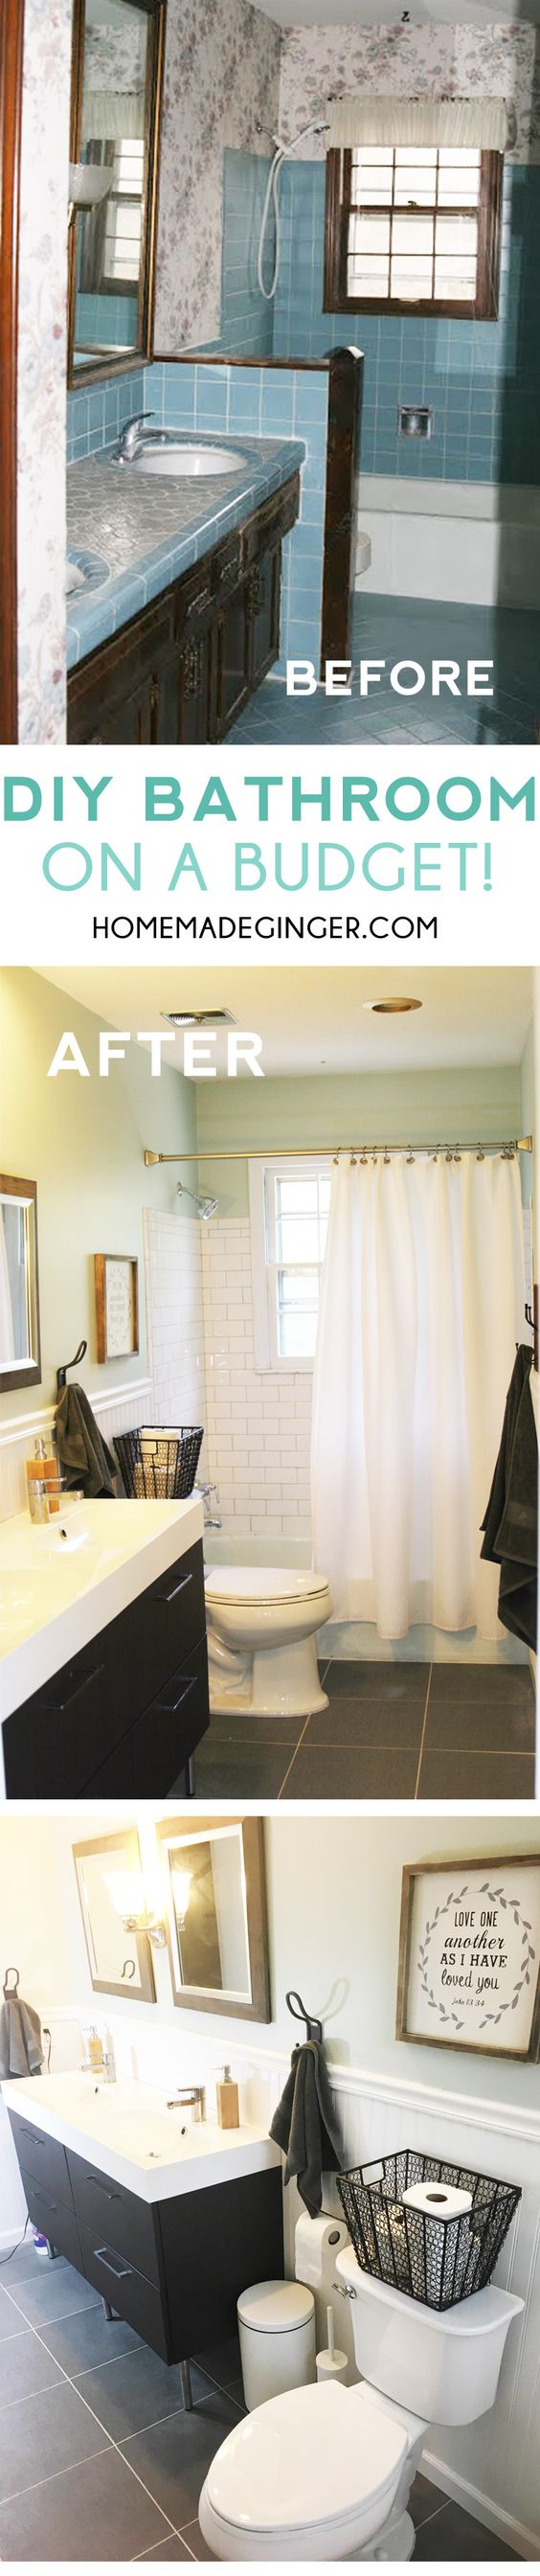 Diy bathroom on a budget home renovation photos and money - Remodeling your bathroom on a budget ...